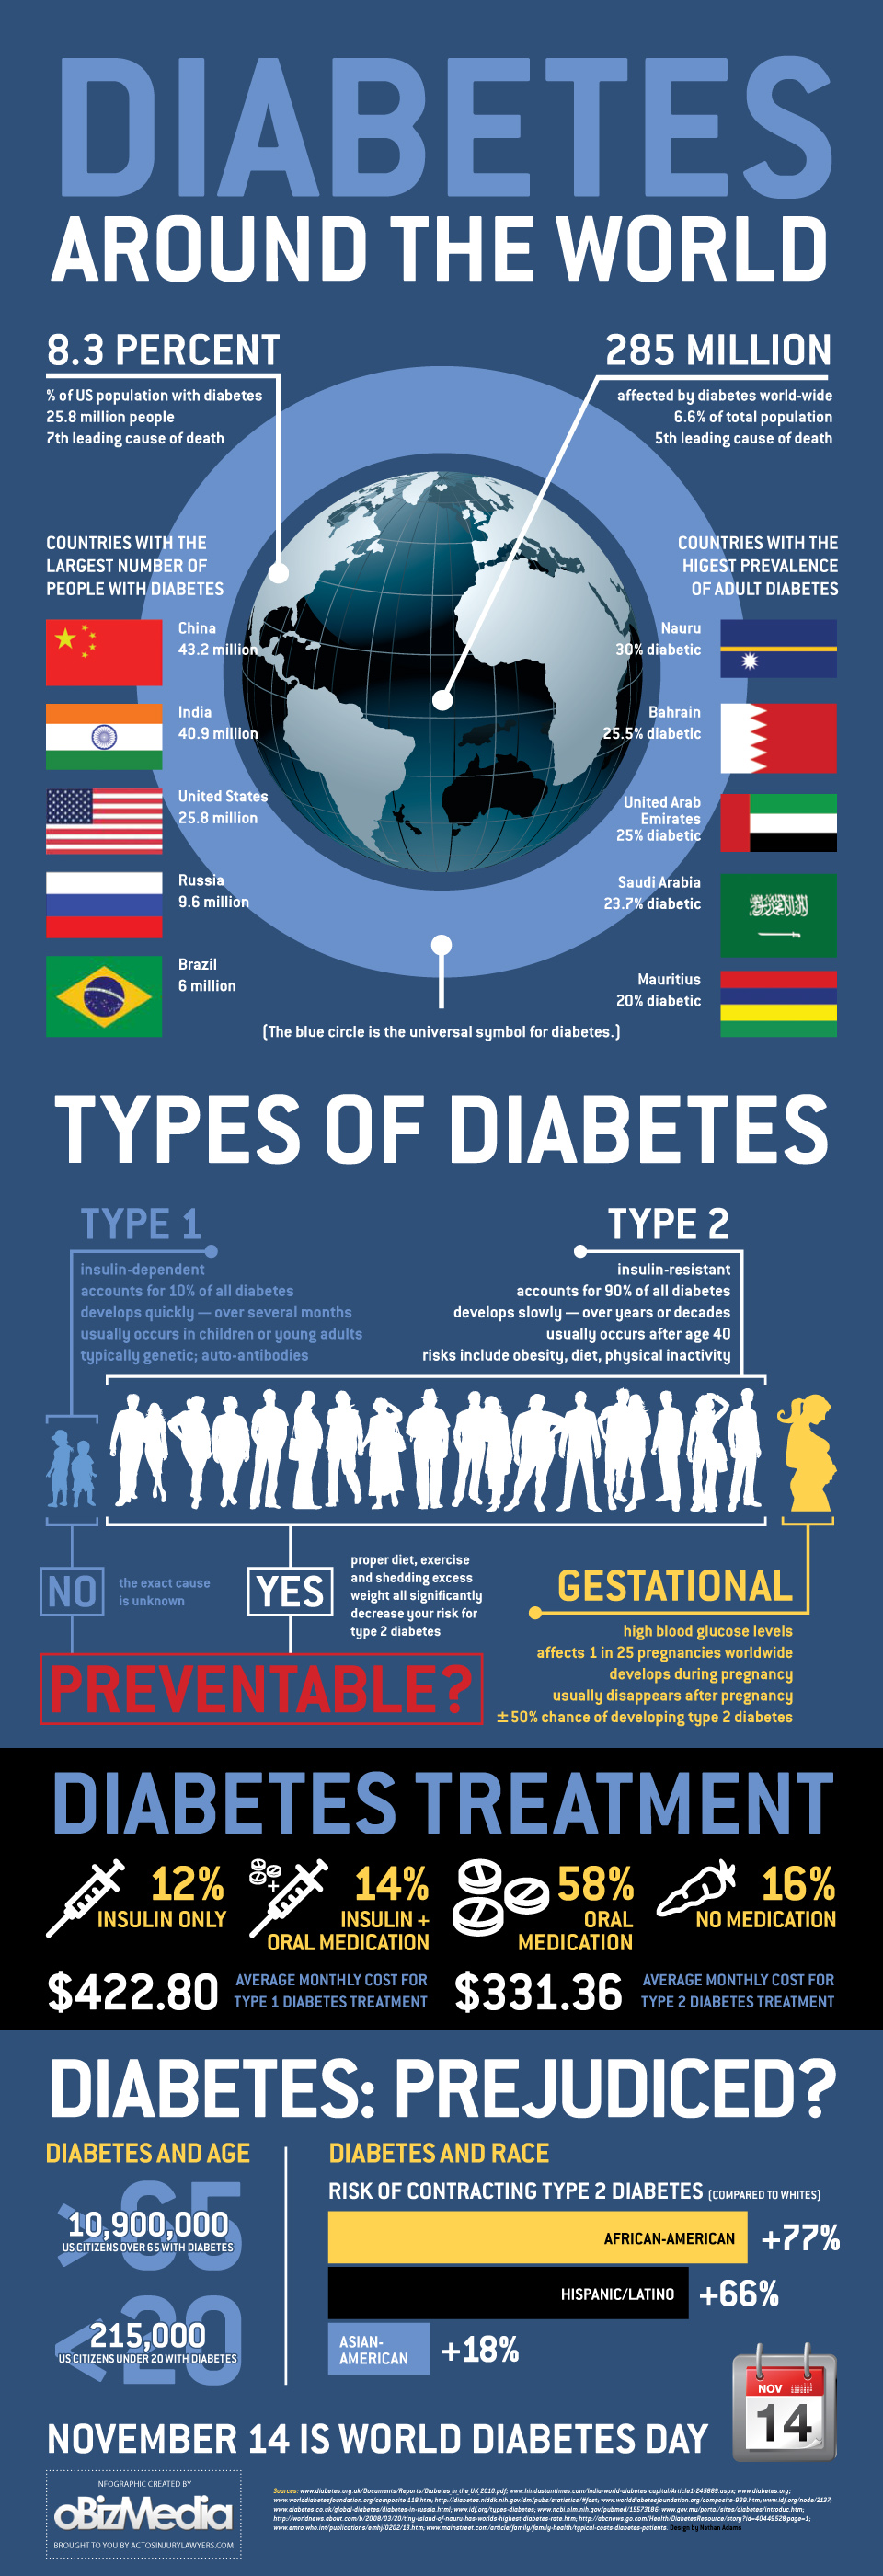 Diabetes-Statistics-Worldwide-International-Infographic